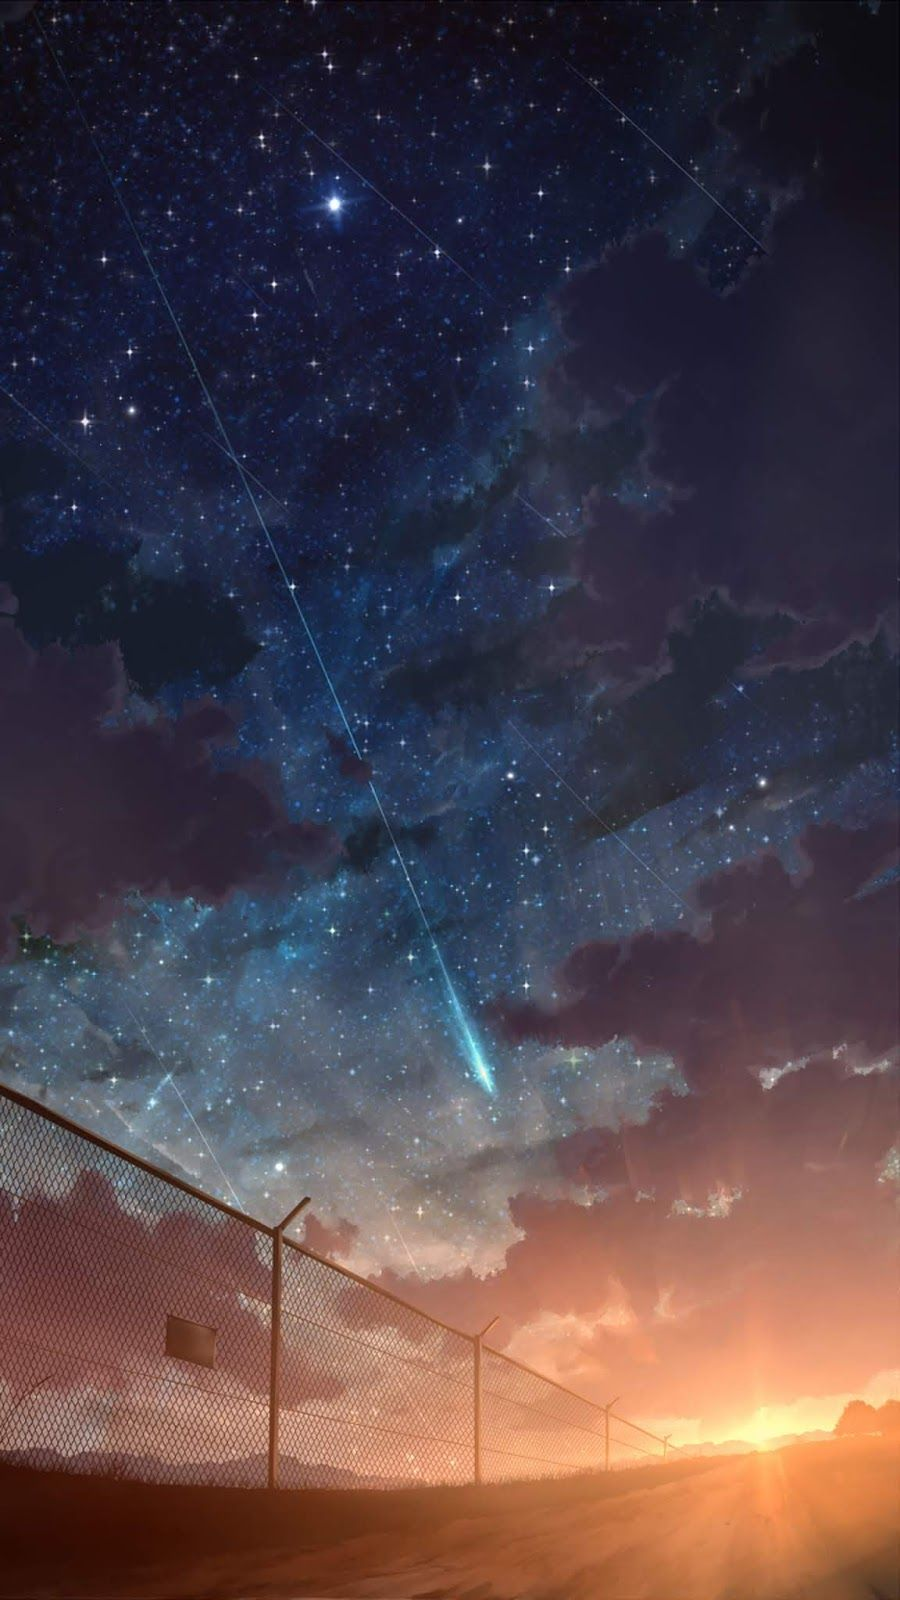 Starfall In The Sunset Wallpaper Iphone Android Background Followme Scenery Wallpaper Anime Backgrounds Wallpapers Beautiful Wallpapers